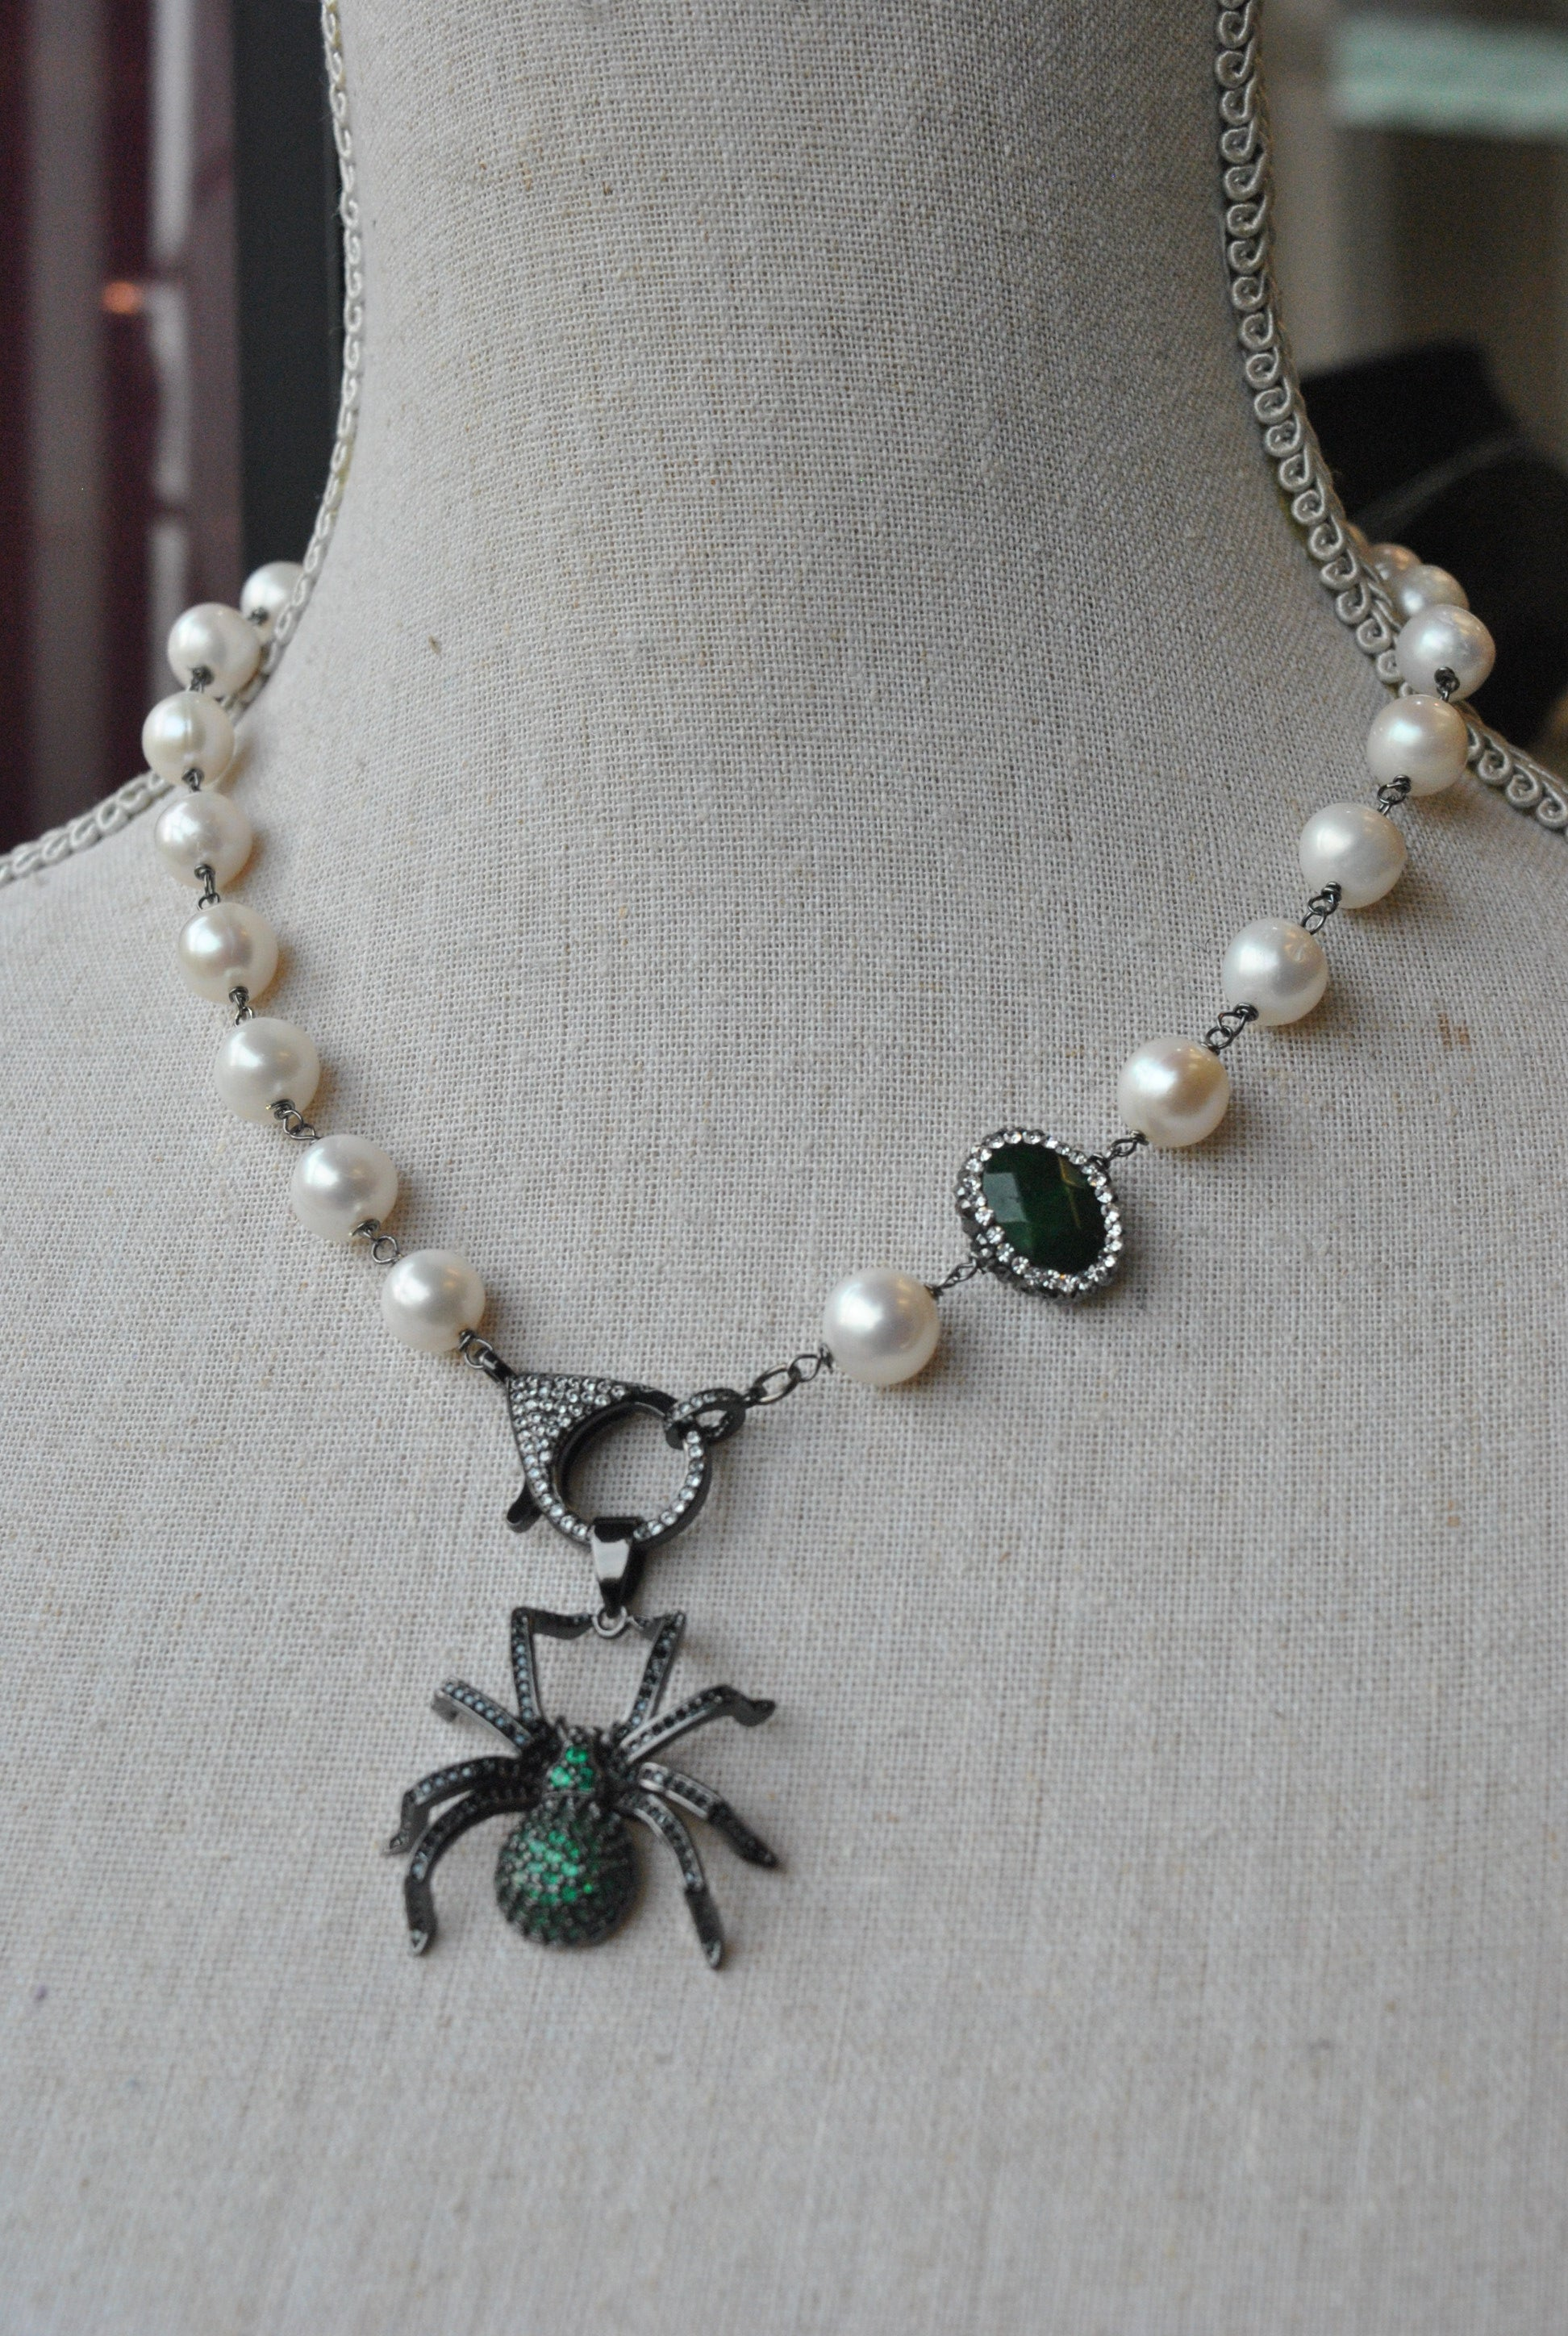 WHITE FRESHWATER PEARLS ASYMMETRIC NECKLACE WITH GREEN RHINESTONES SPIDER